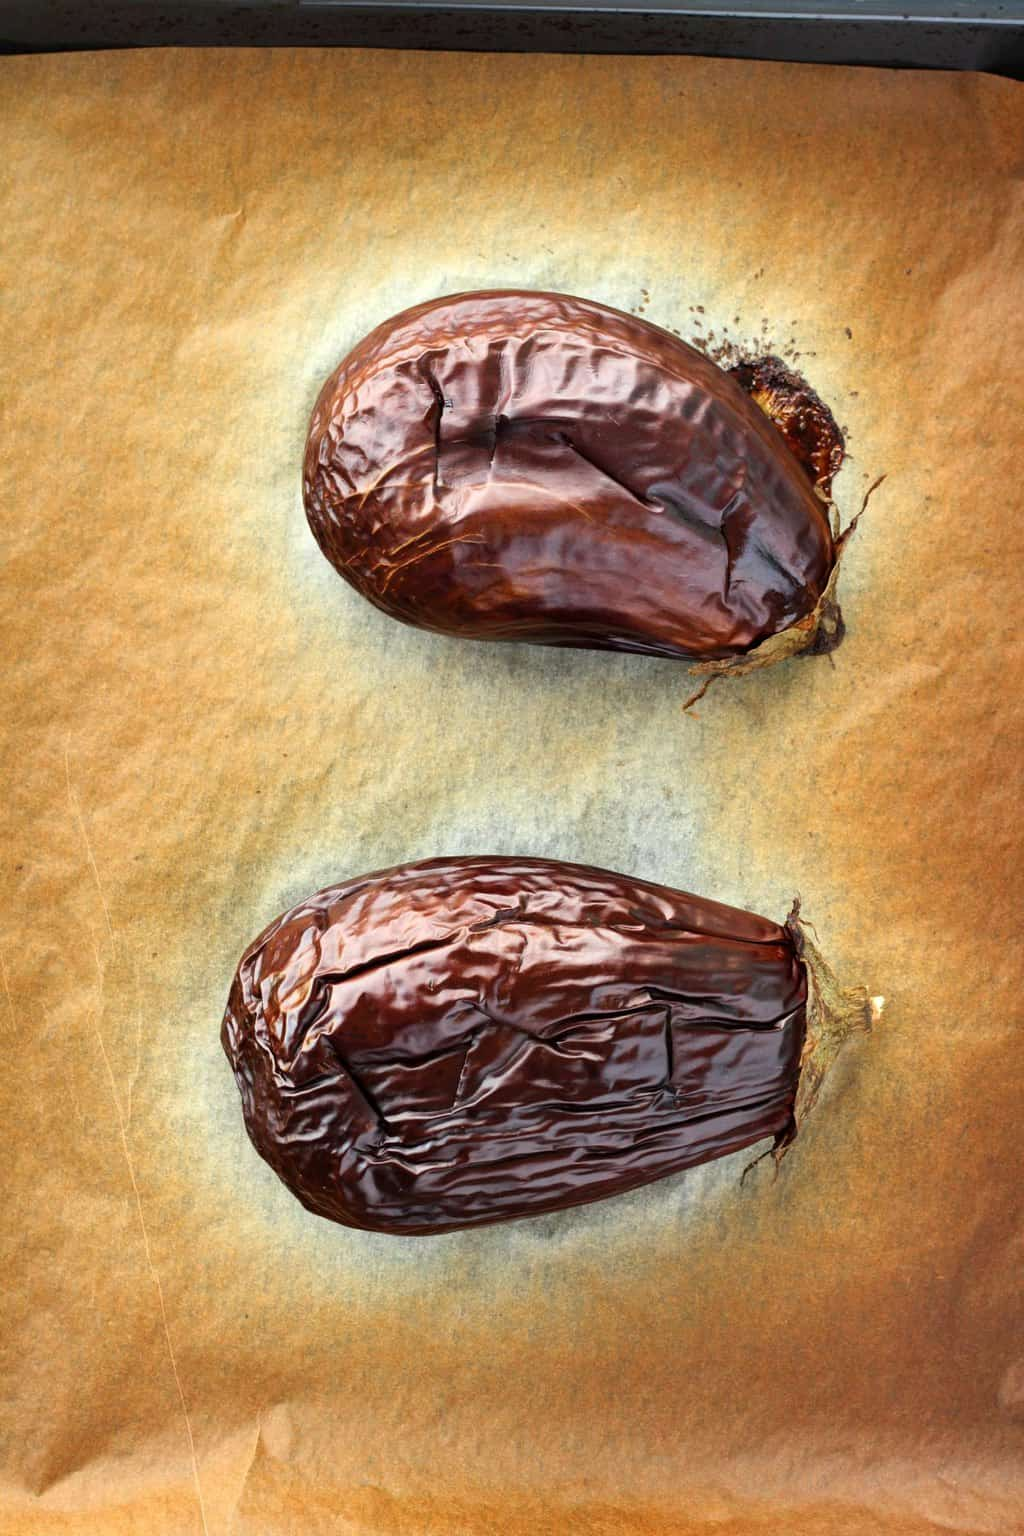 Two cooked eggplants on a parchment lined baking tray, straight out of the oven.